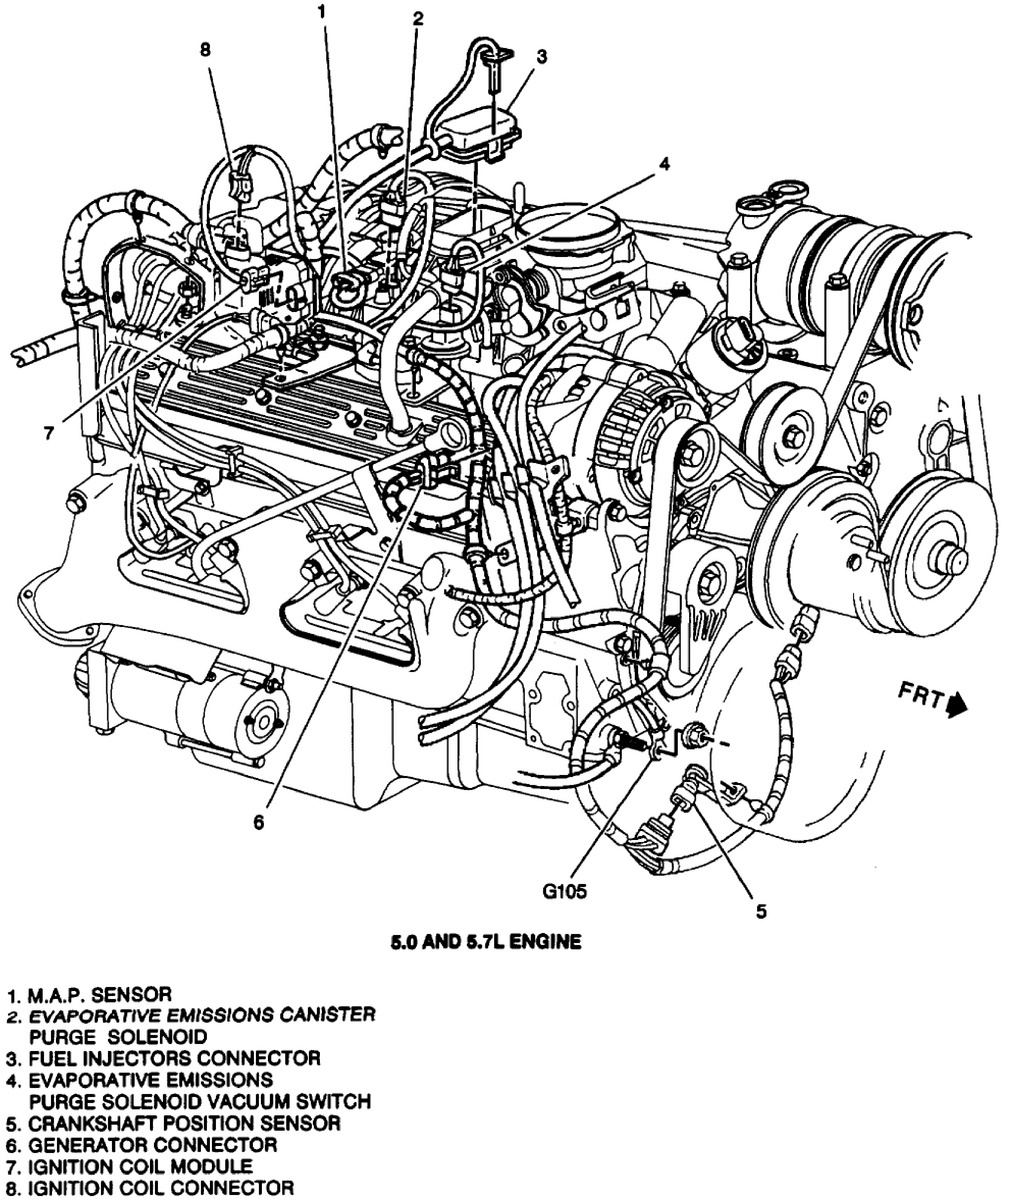 hight resolution of 95 corsica 2 2 engine diagram schematics wiring diagrams u2022 rh parntesis co chevy 4 3 vortec